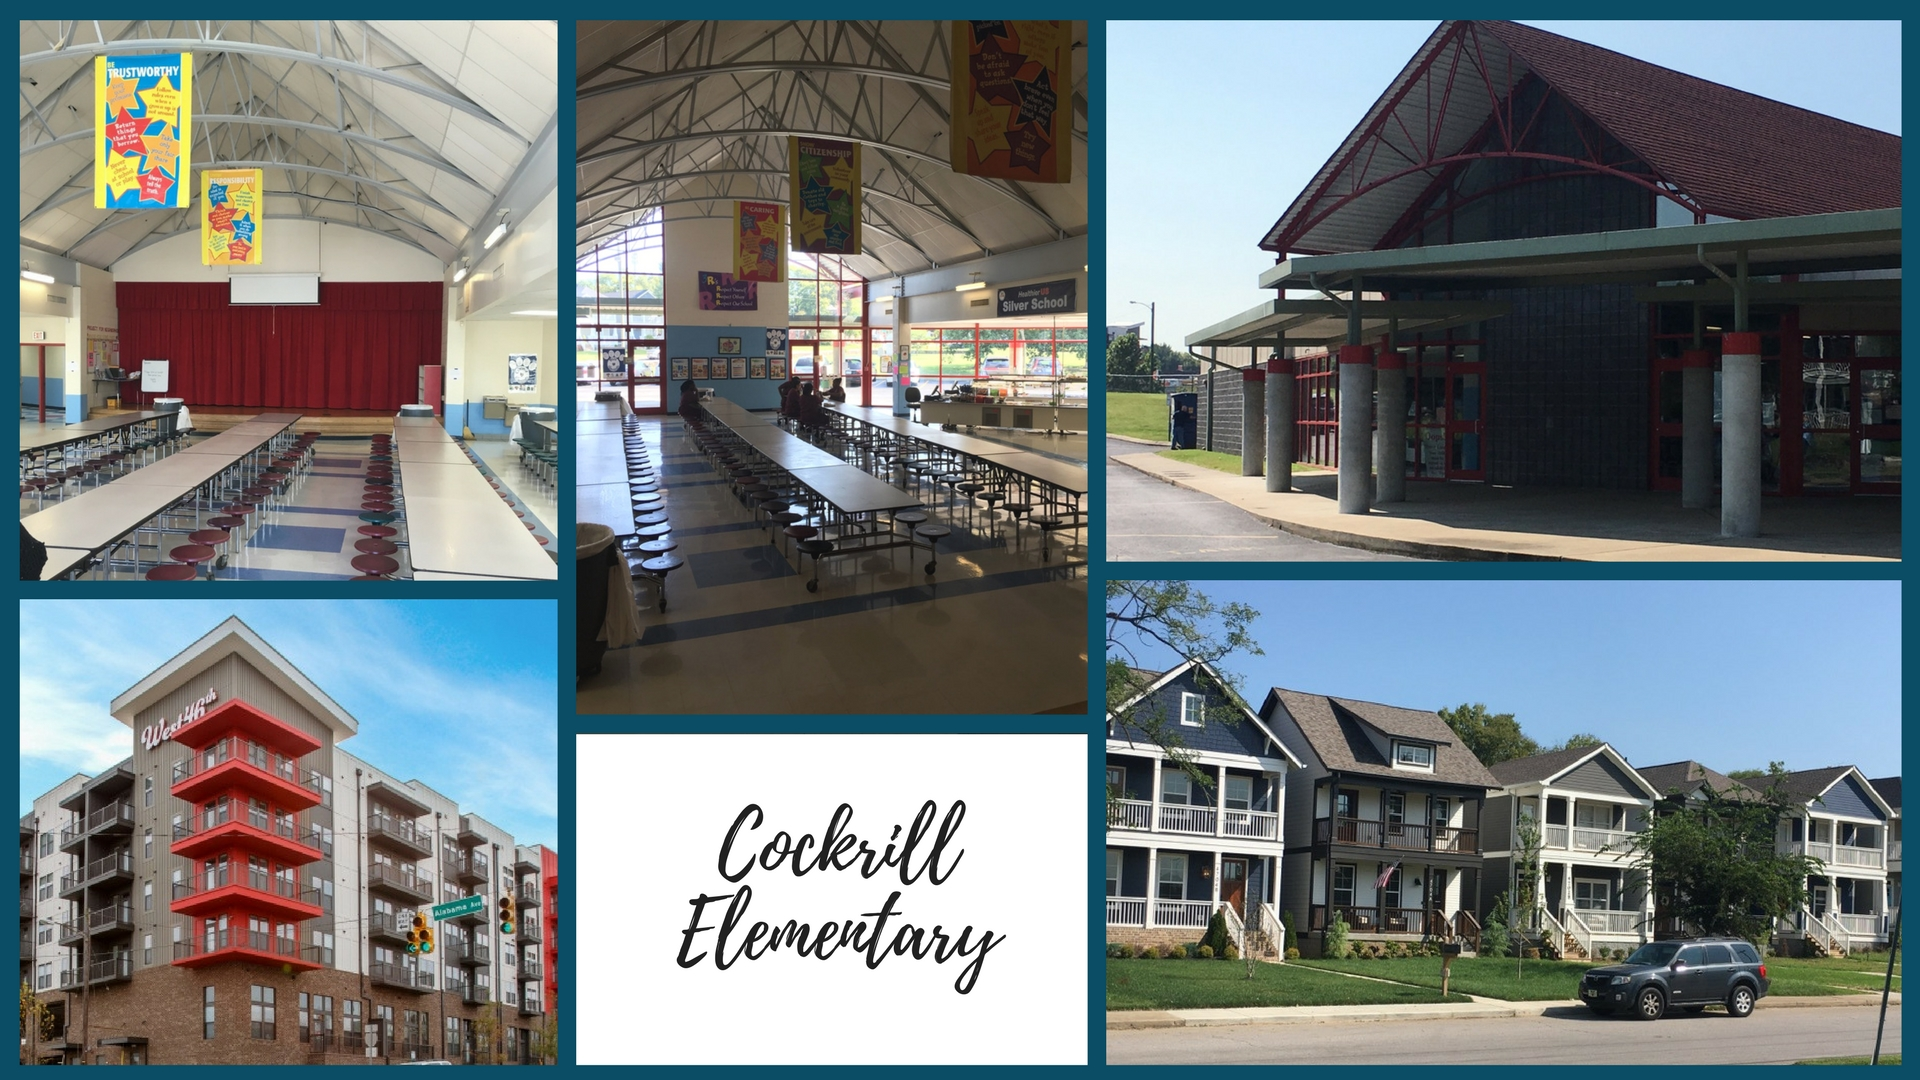 Cockrill Elementary.jpg